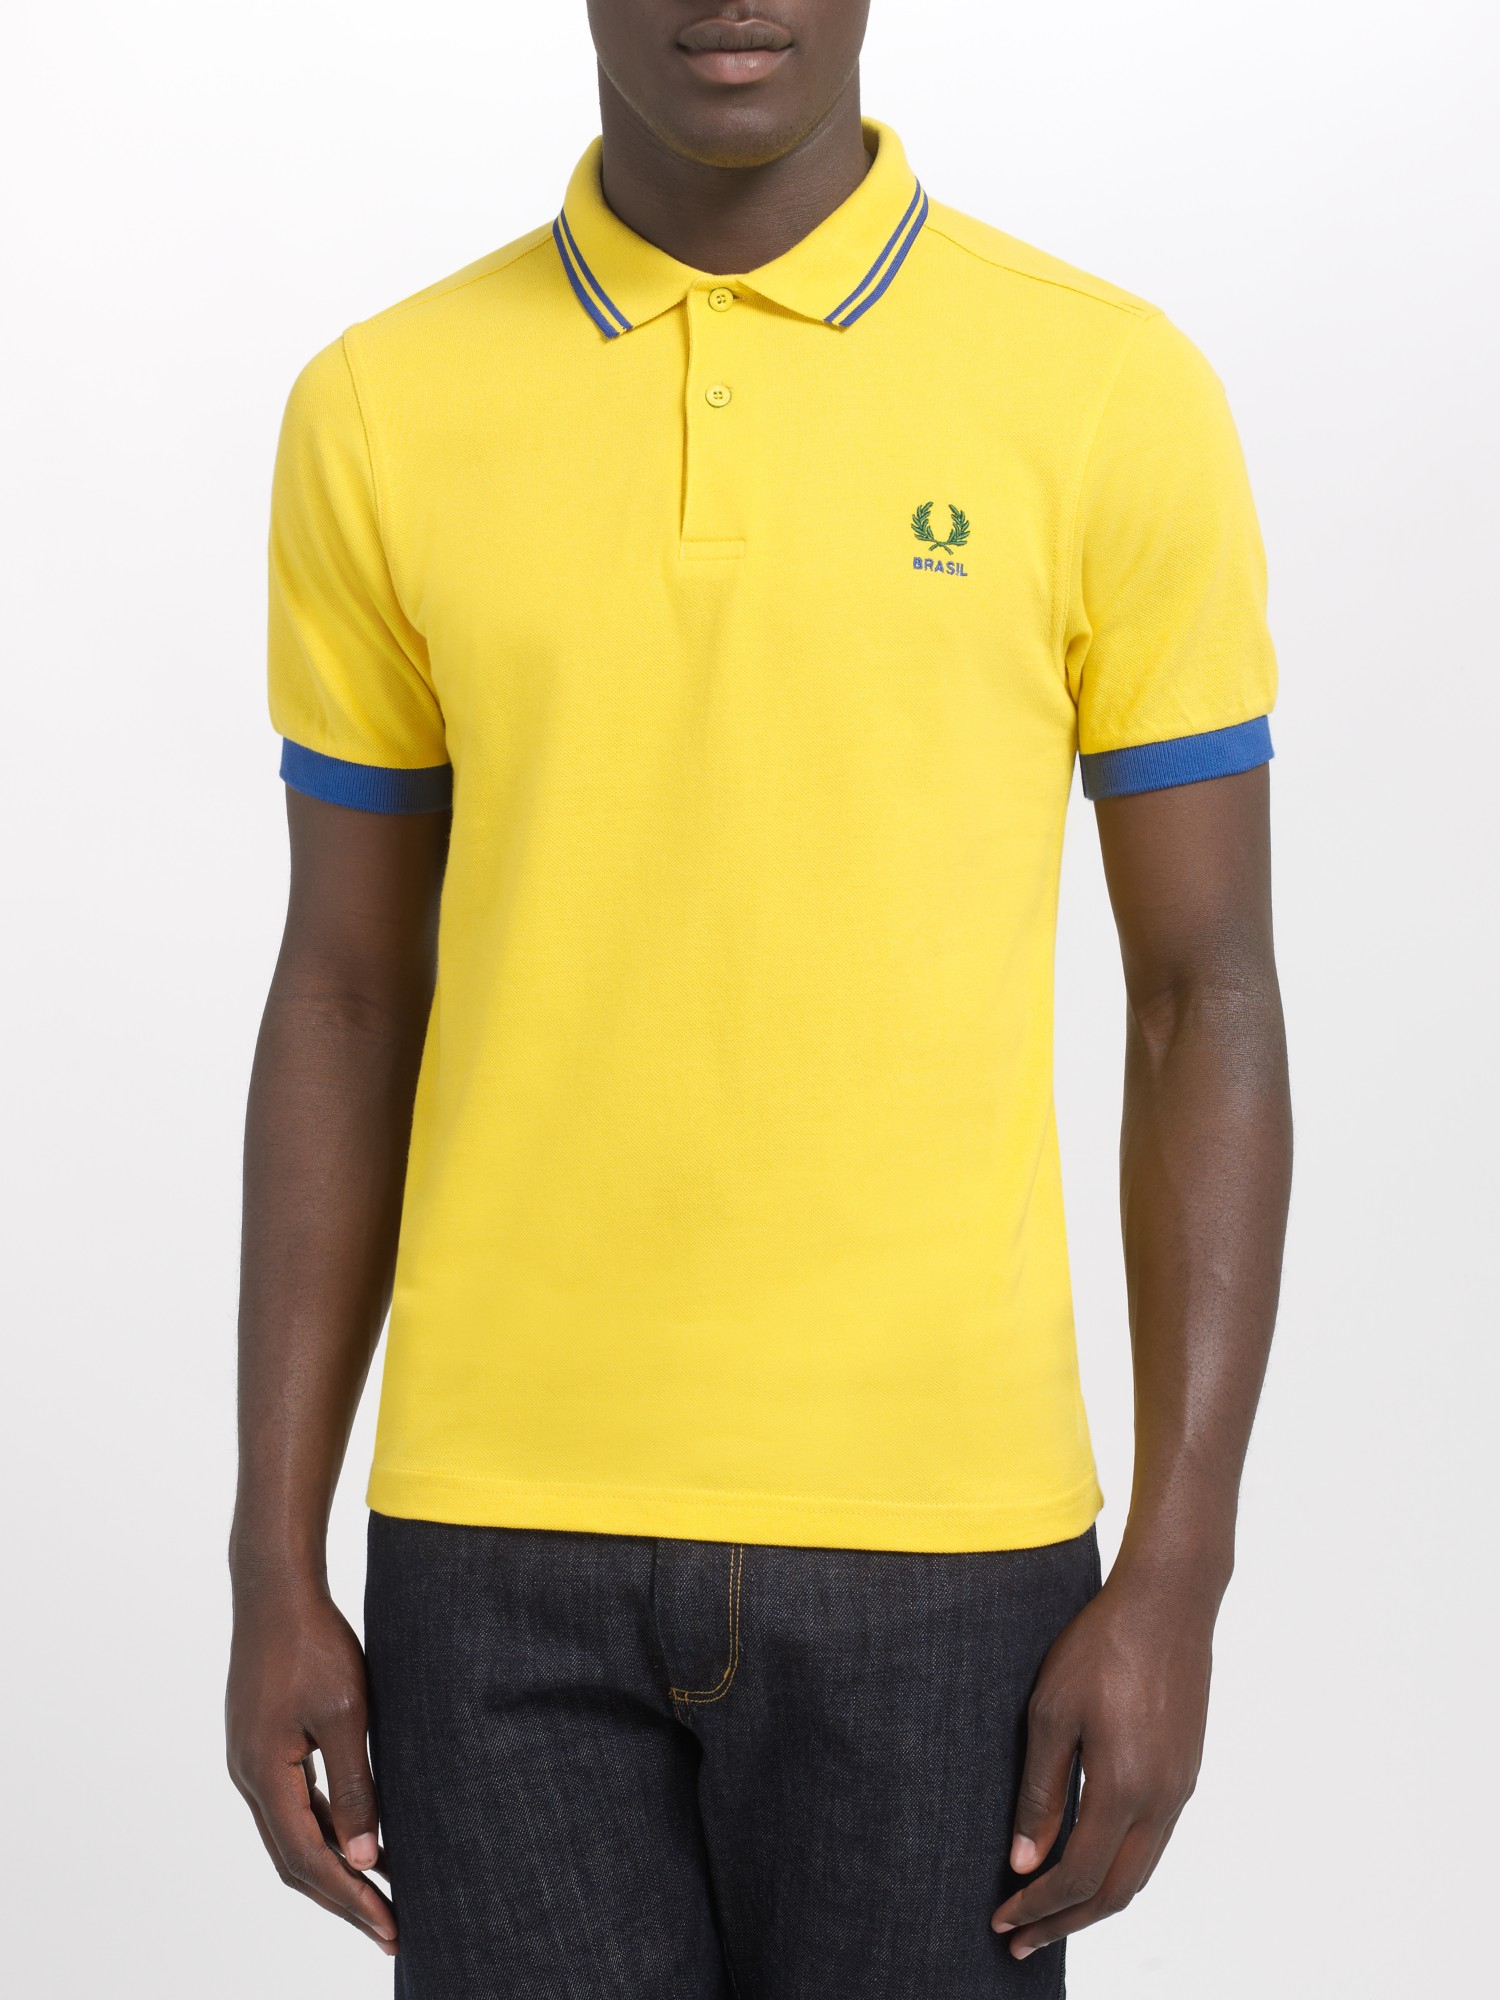 8801c4bca Fred Perry Brazil Country Polo Shirt in Yellow for Men - Lyst